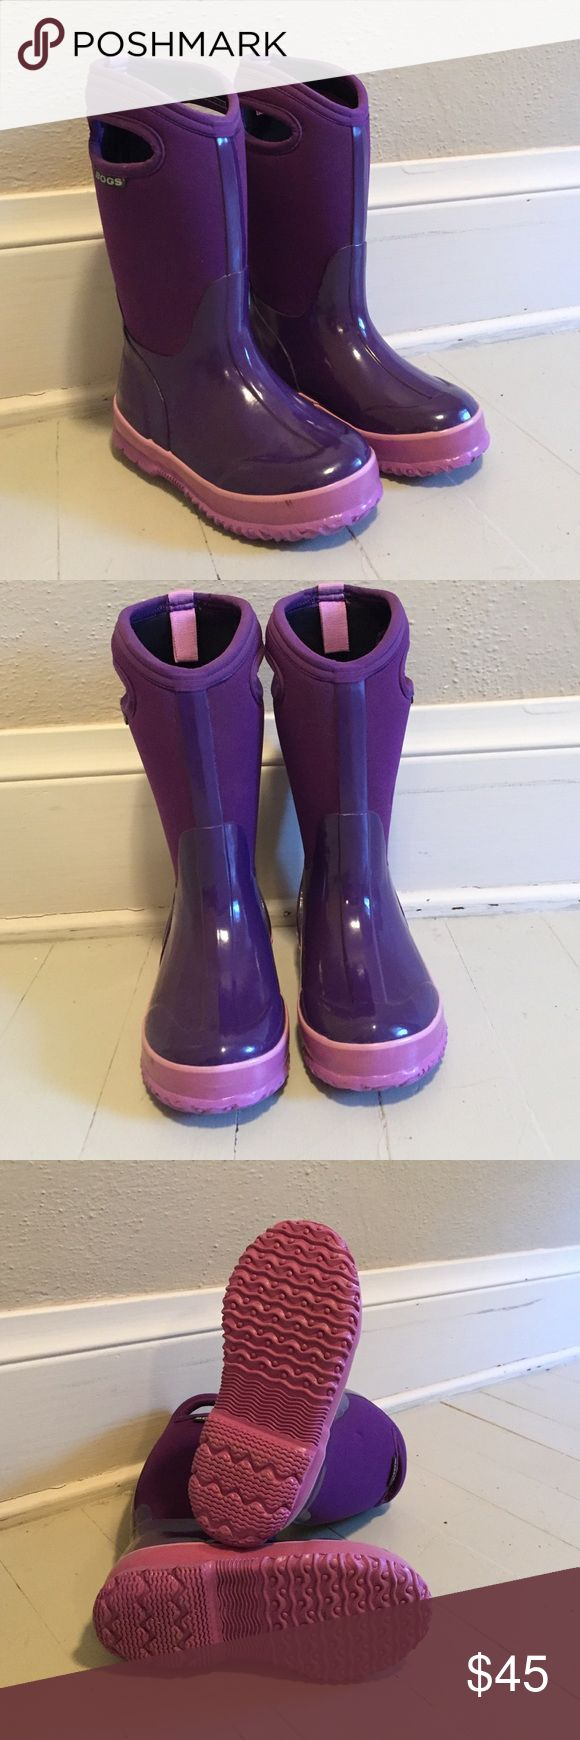 Like New,  BOGS Size 13 Girls Winter Boots. Purple and lavender BOGS winter boots. Like new condition. Only sign of wear is a small black scuff on the first image on the left front boot. Bogs Shoes Rain & Snow Boots